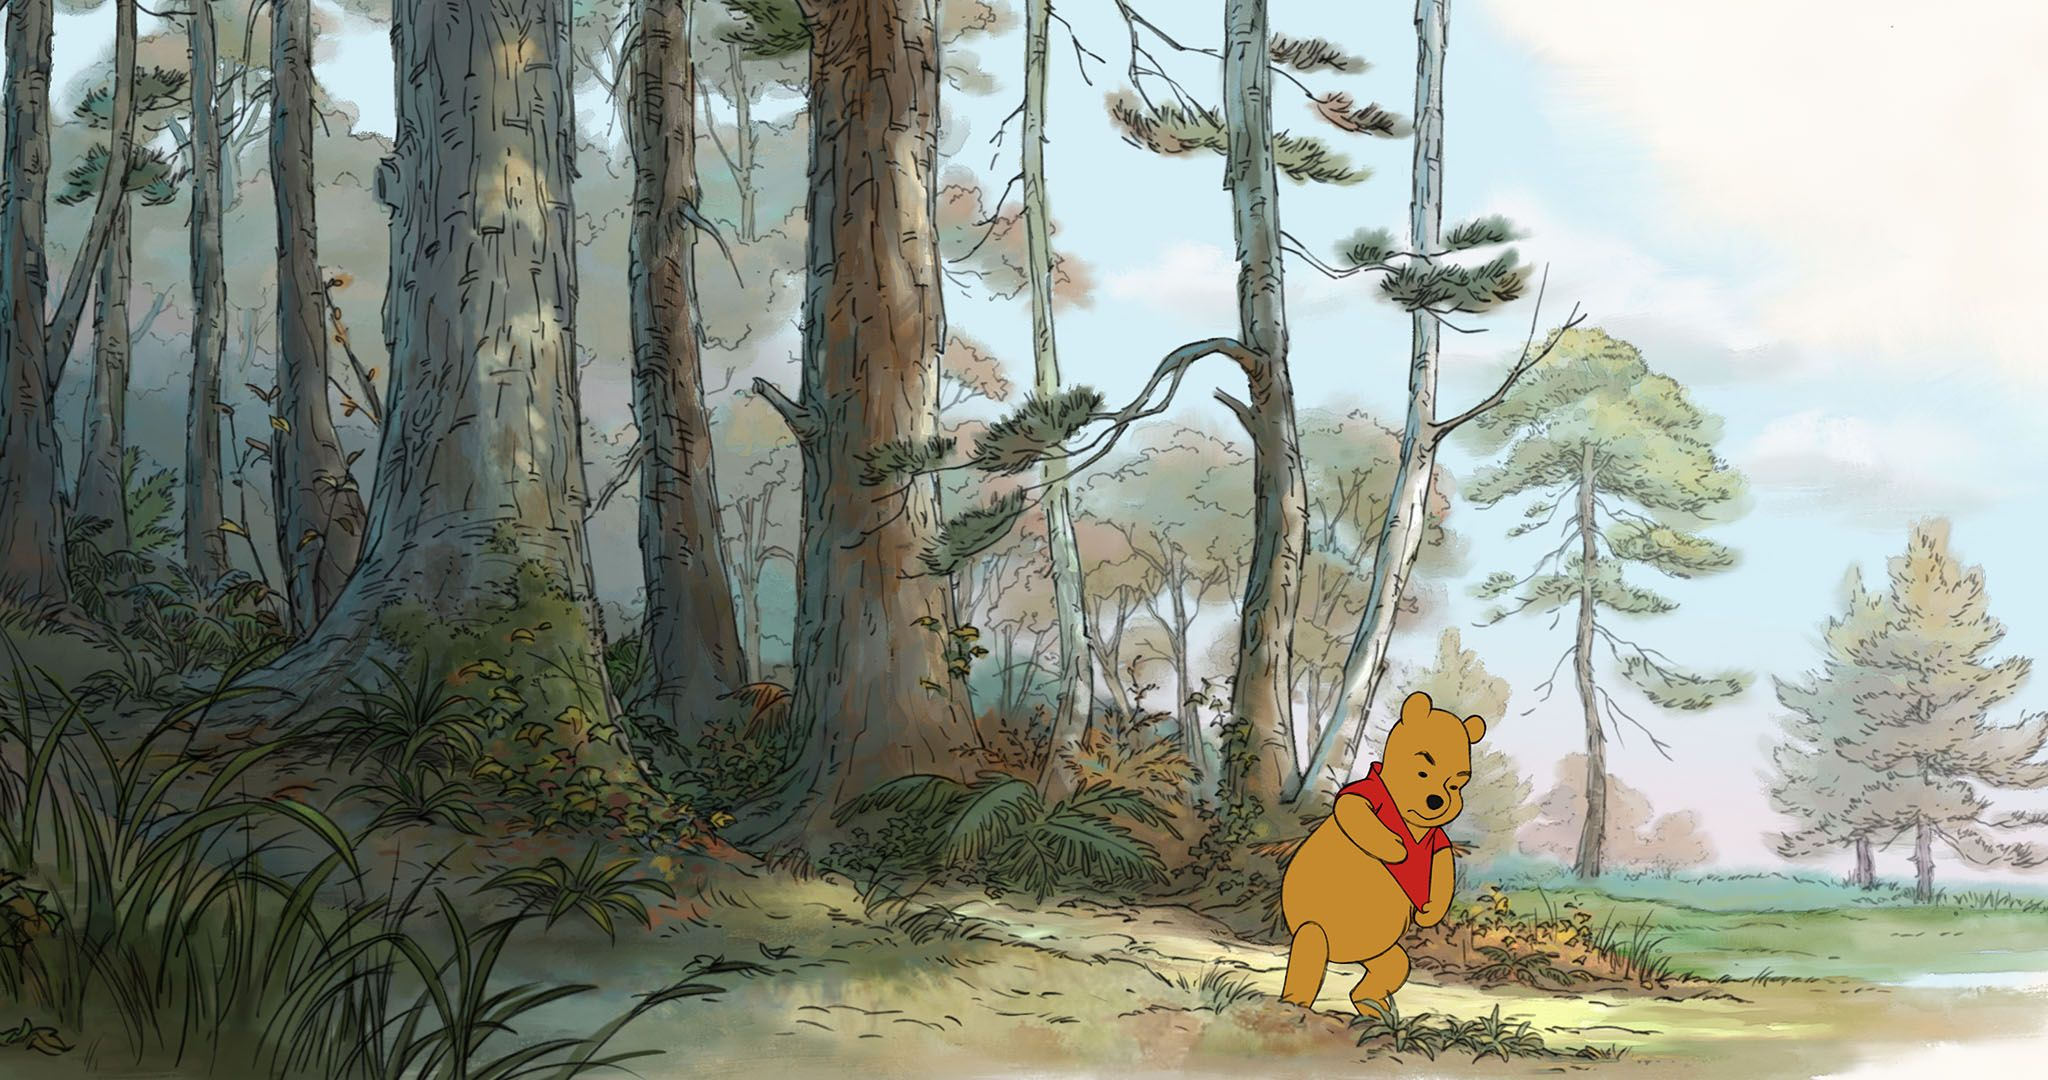 Winnie The Pooh Movie Images Collider